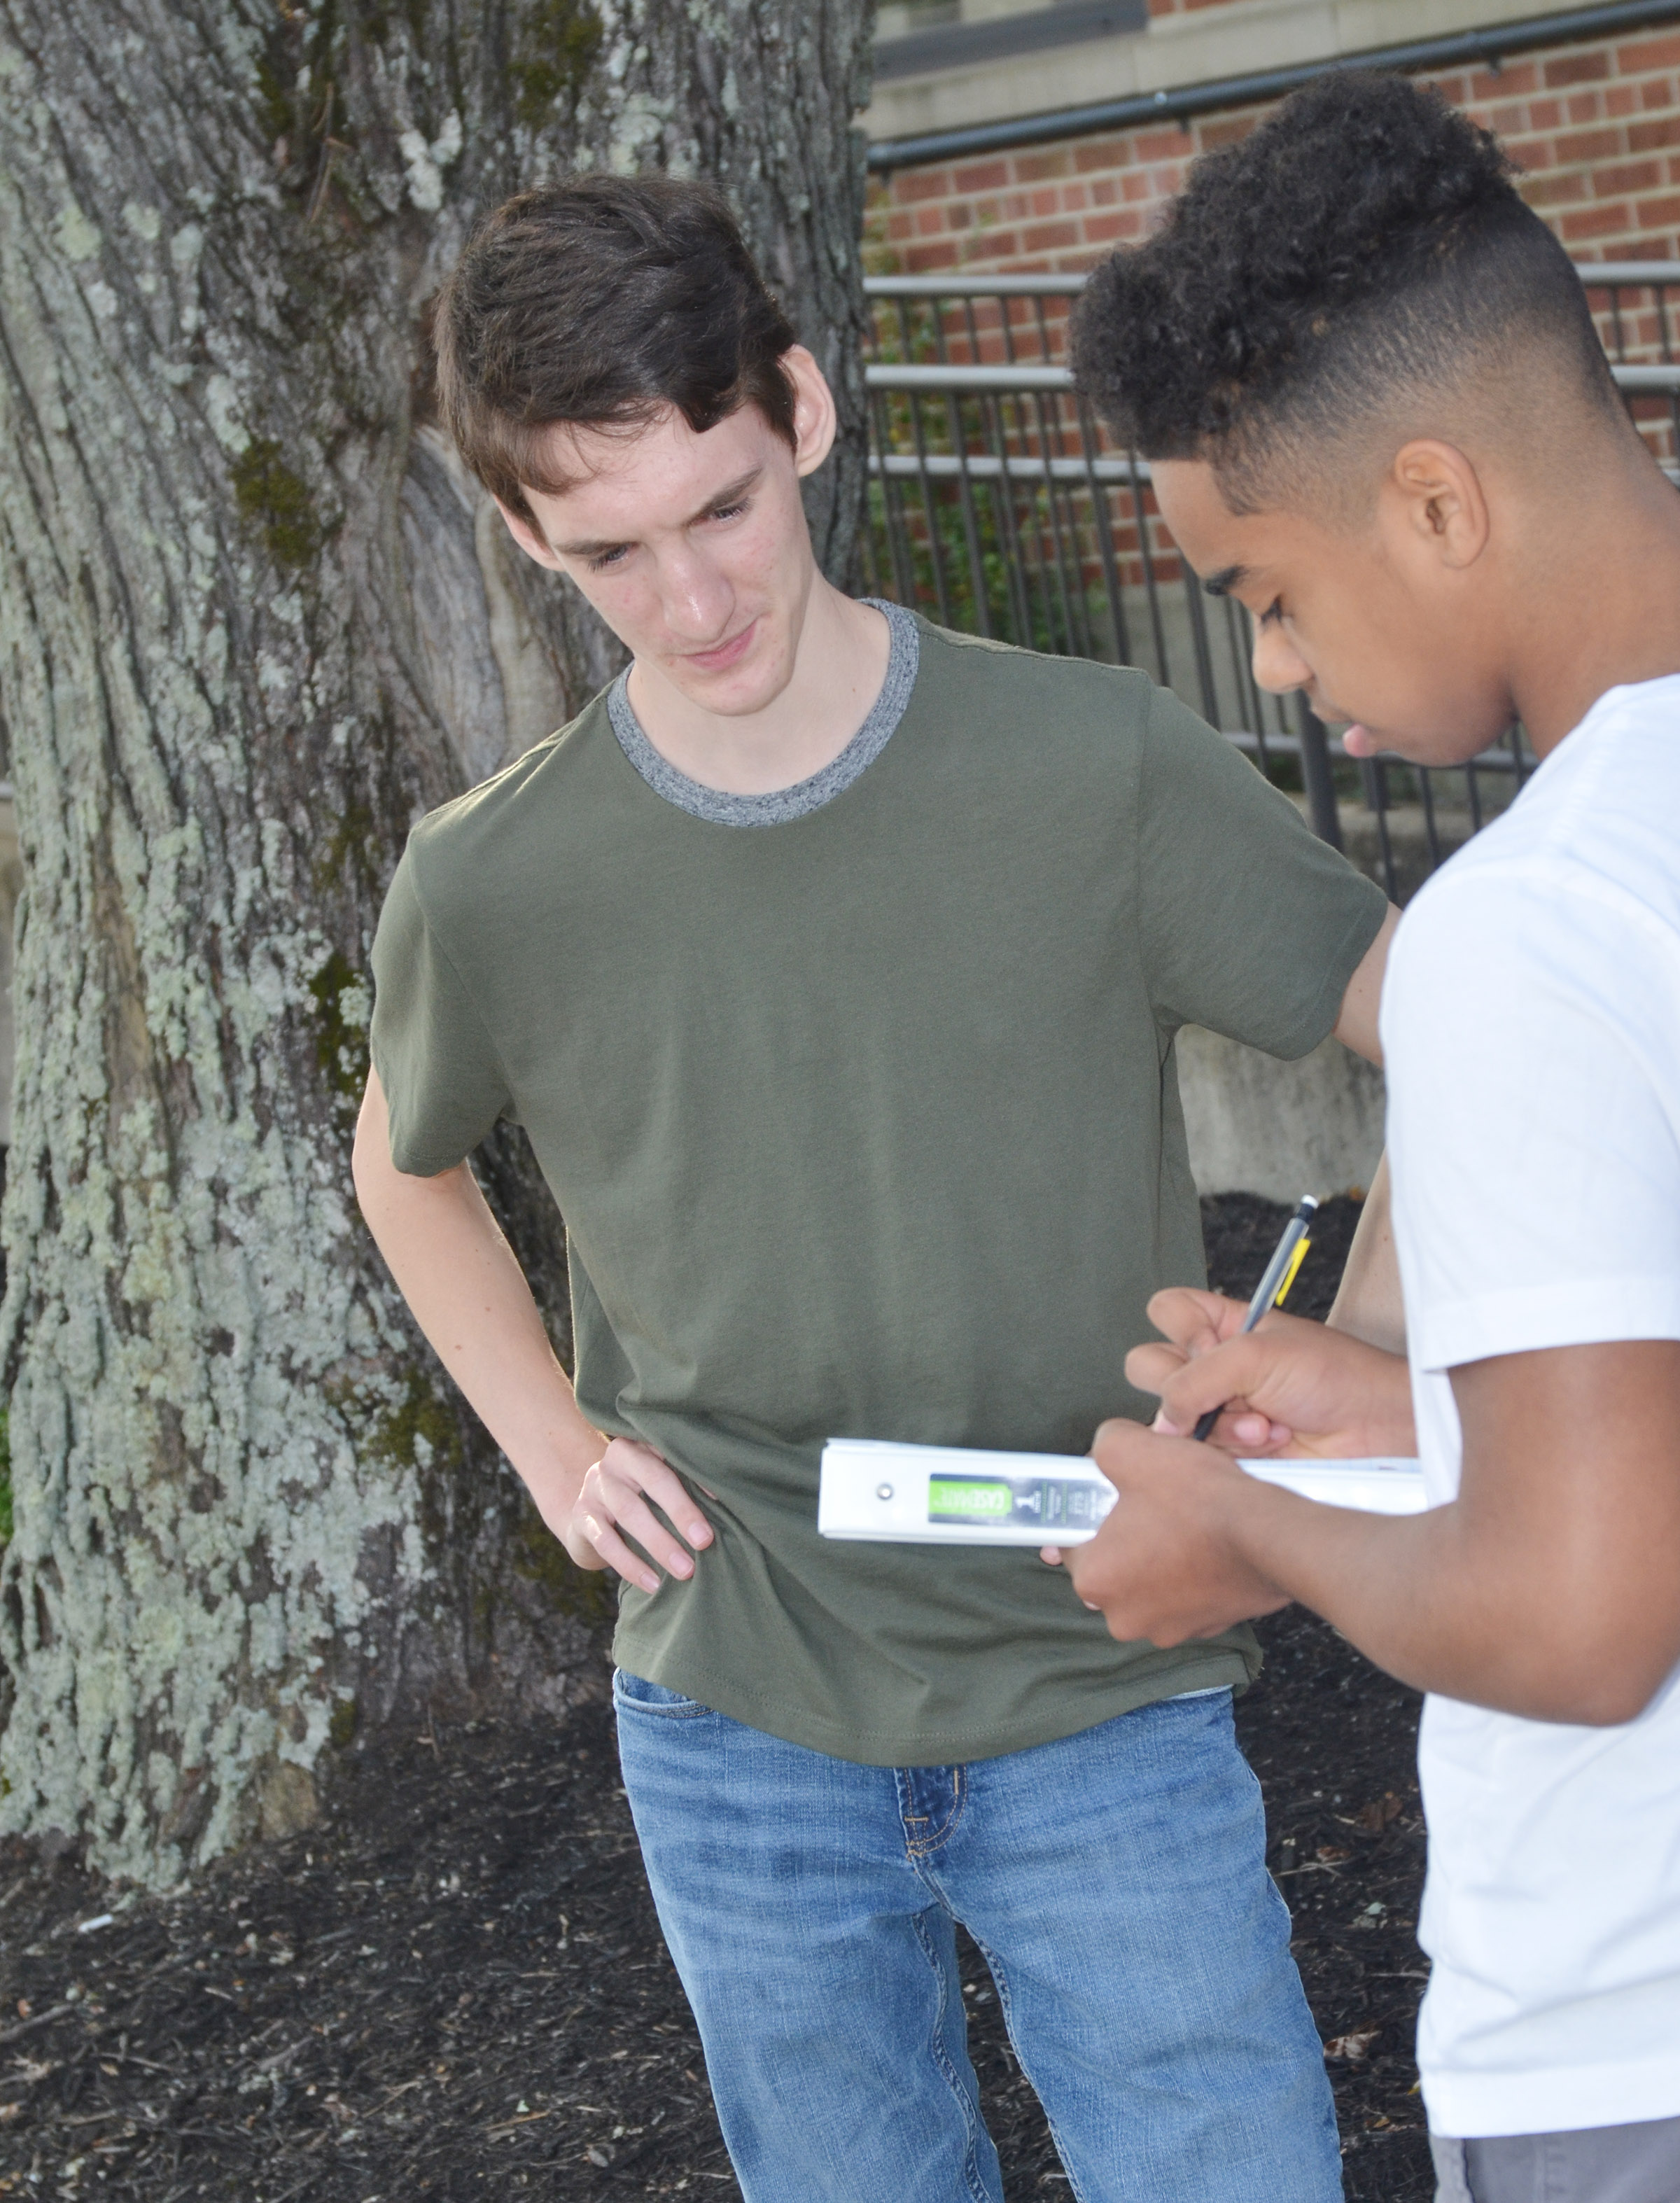 CHS juniors Ian McAninch, at left, and Davon Cecil work together to describe their surroundings as they study the concept of contextualization.